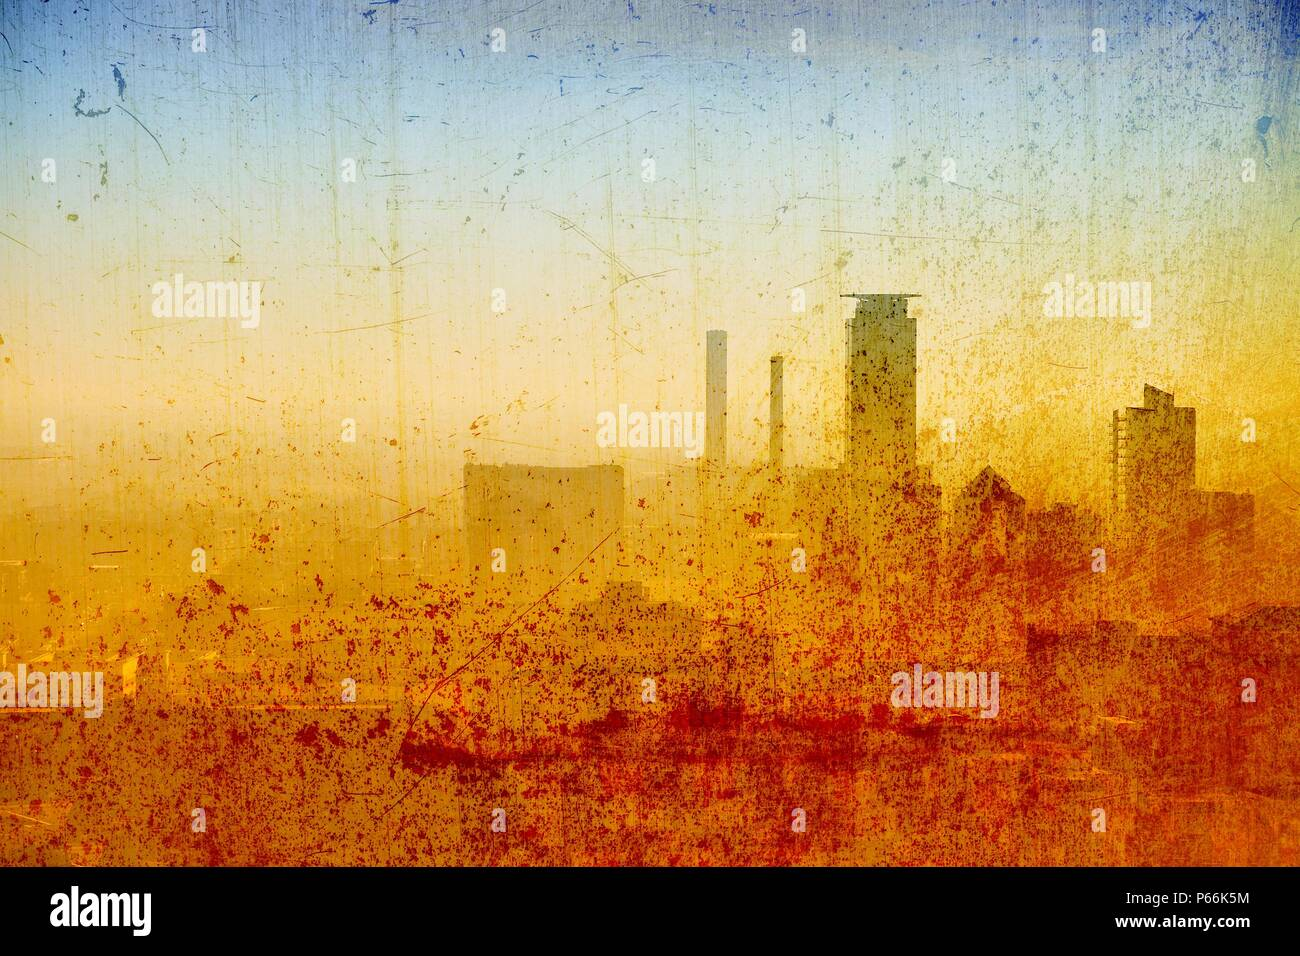 Vintage city skyline in blue and sepia tones. - Stock Image